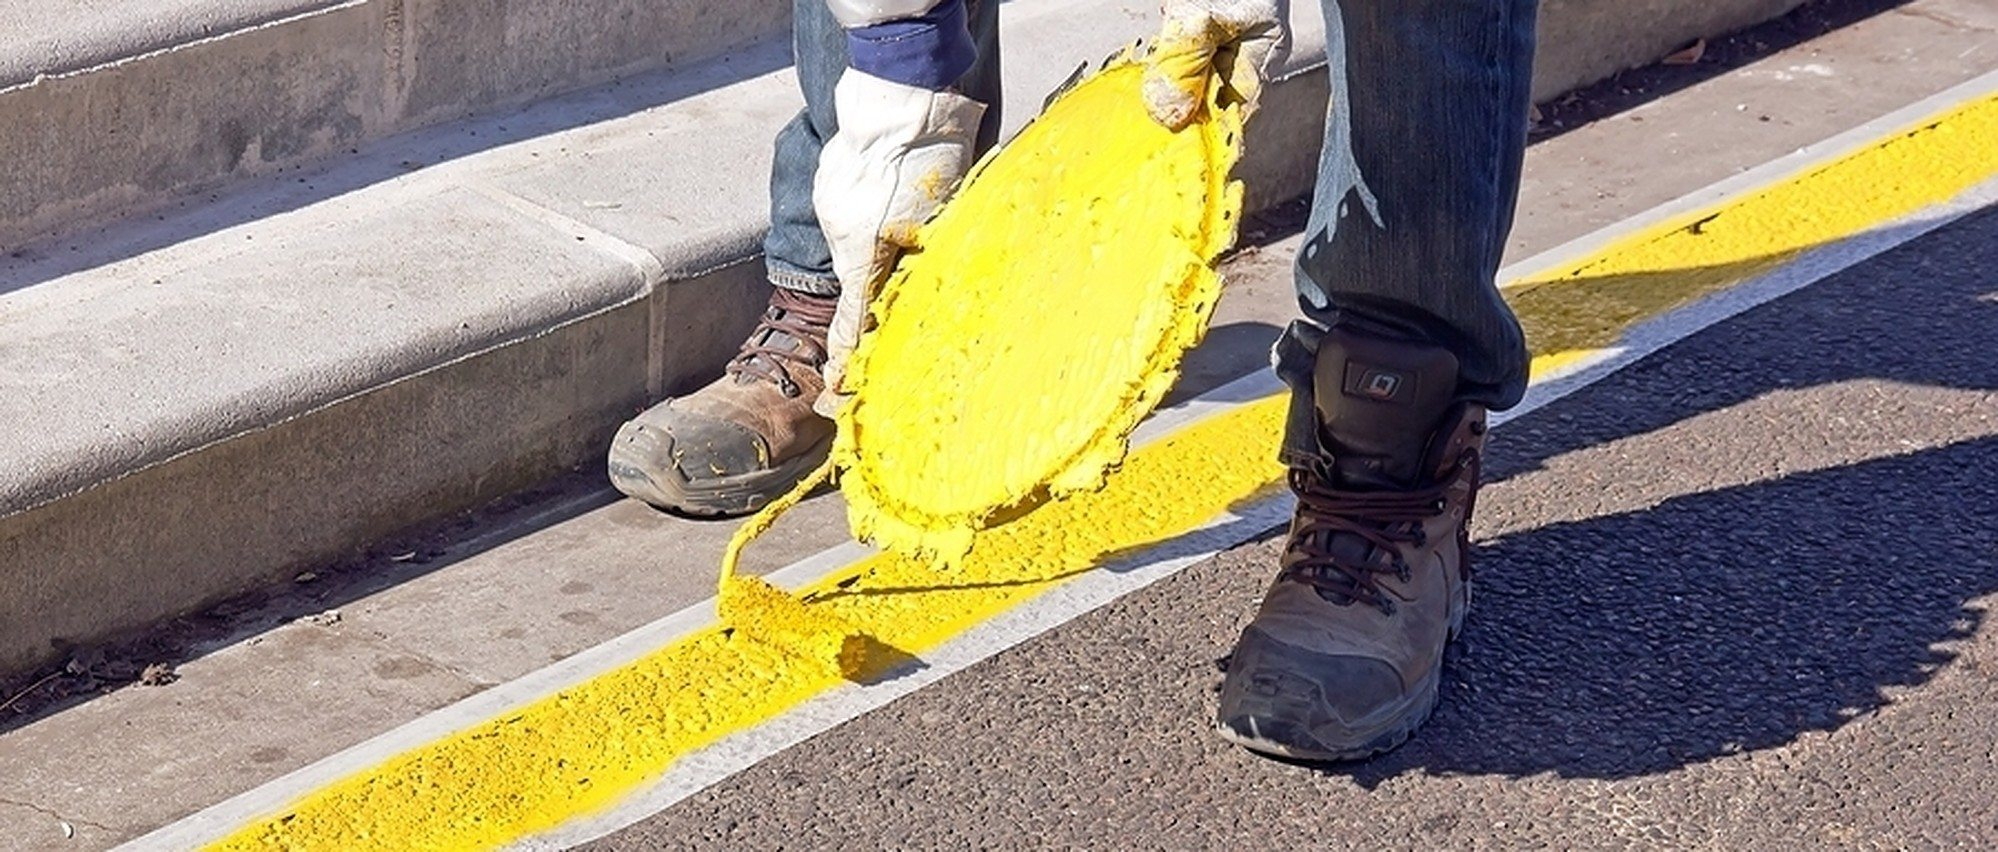 how to pass the C-32 contractor license exam in california for parking lot striping, highway improvement and public works projects